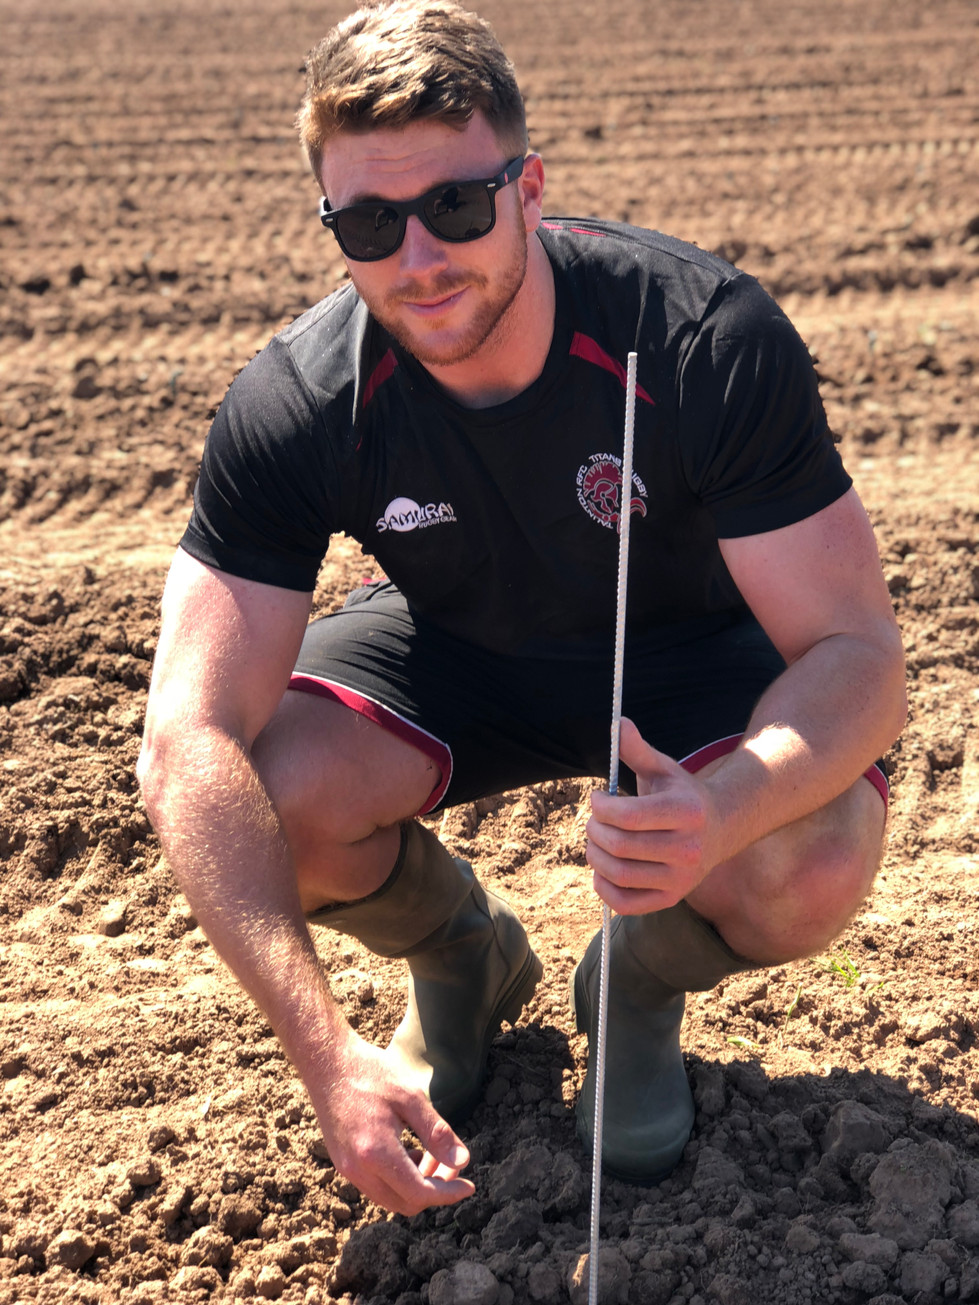 Planting a Vineyard - not as glamorous as you might expect.